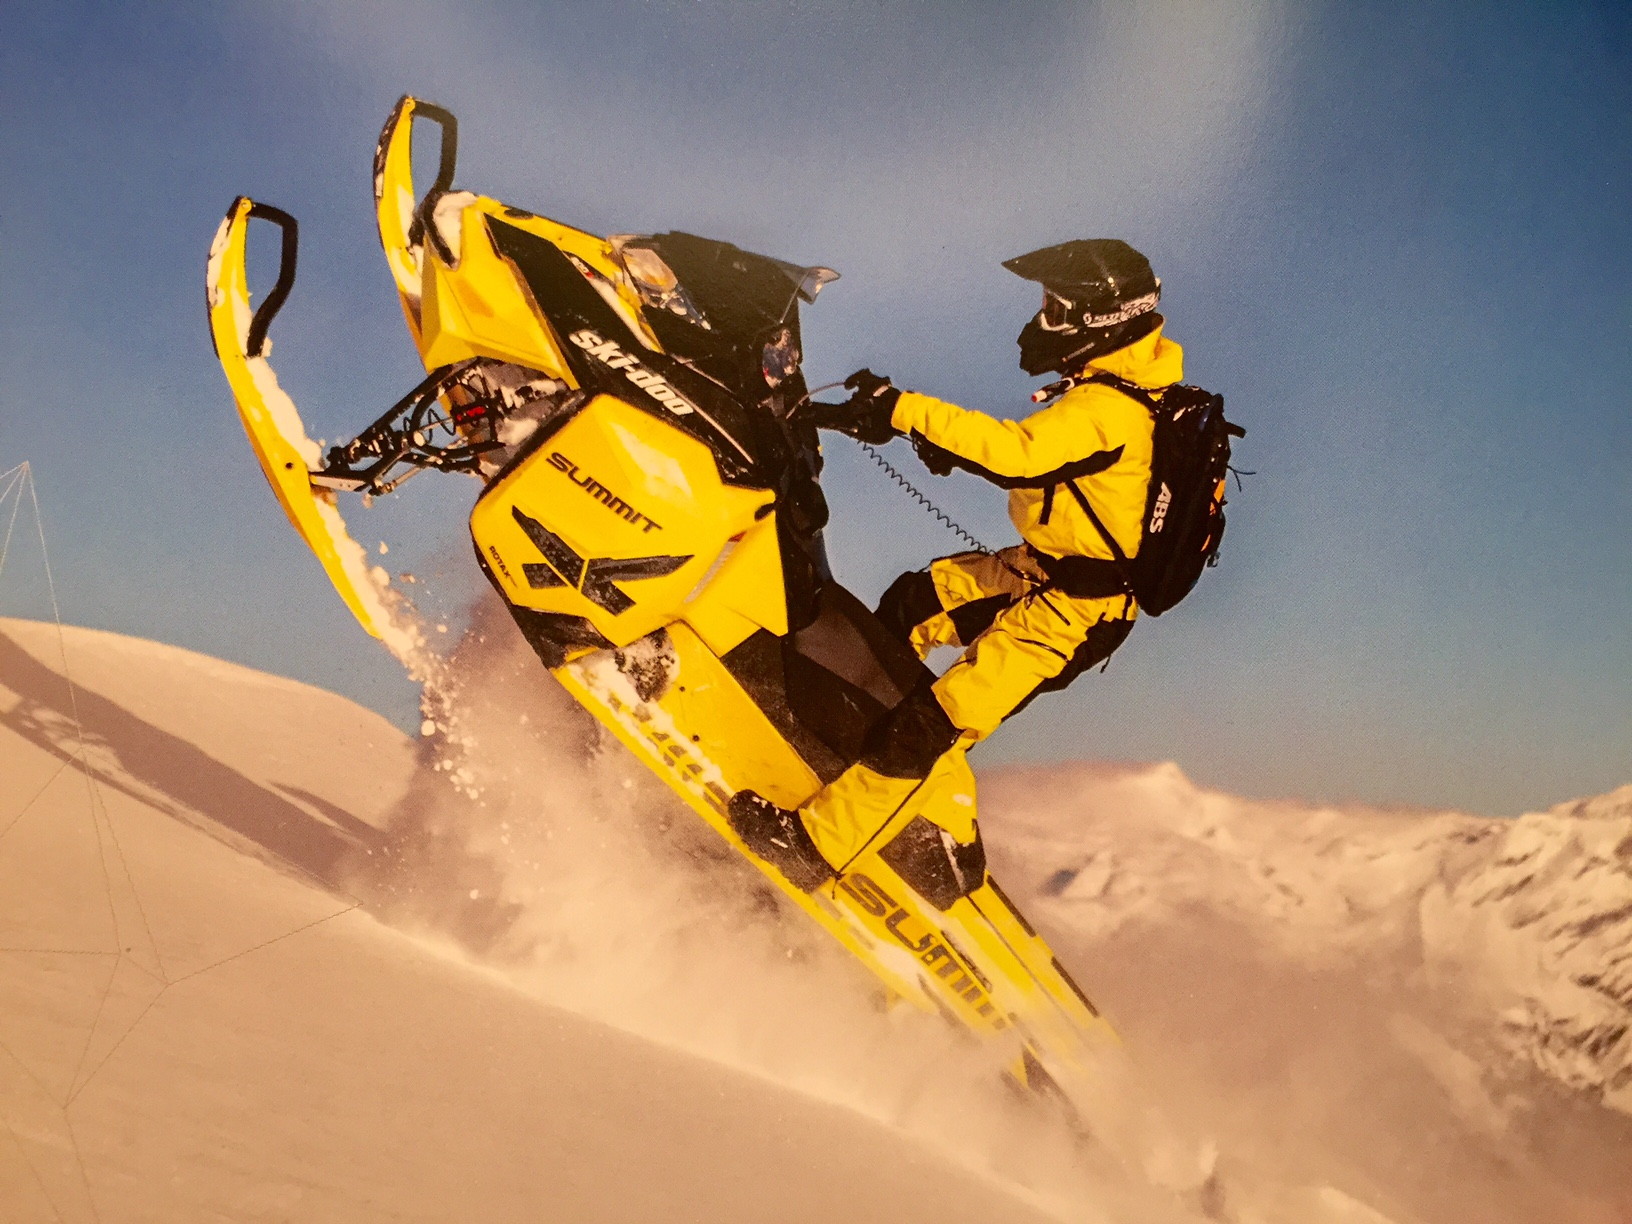 Snowmobiles besides New Snowmobiles For Sale Salt Lake City Ogden Layton Utah Xnewinventory besides 2019 Yamaha Snowmobile Lineup Preview as well Watch moreover Ski Doo Freeride 2016. on 2015 snowmobile lineup